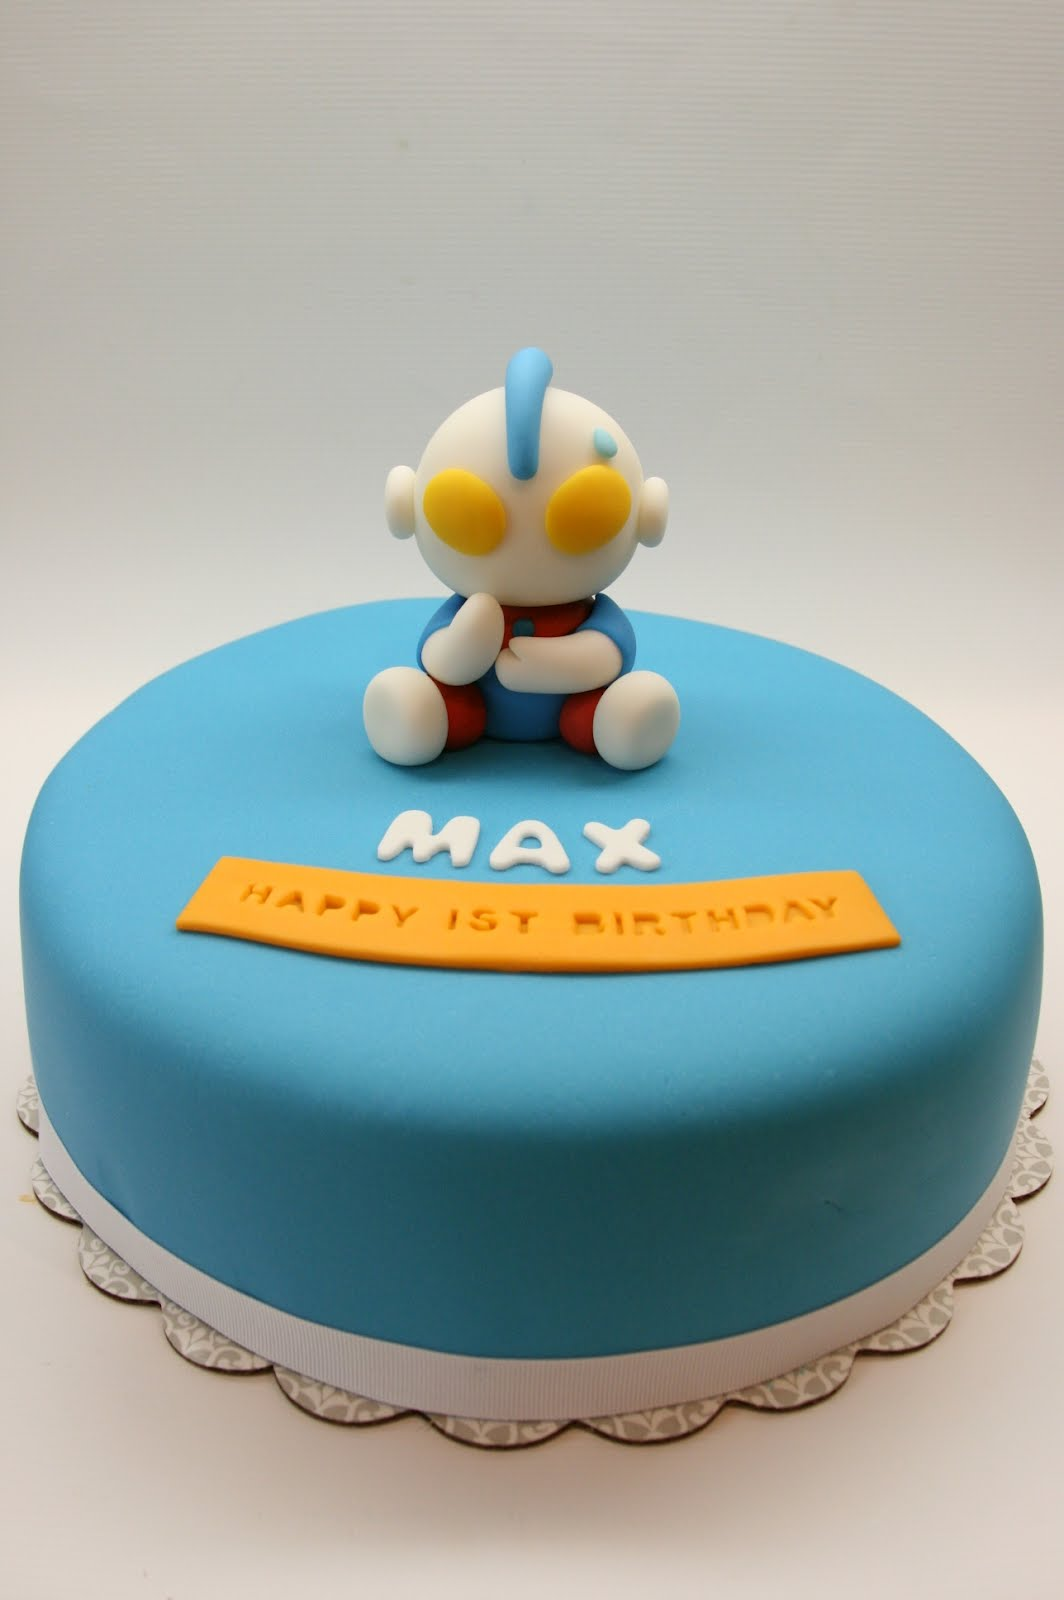 Beautiful Kitchen: Ultraman Cake for Maxs 1st Birthday